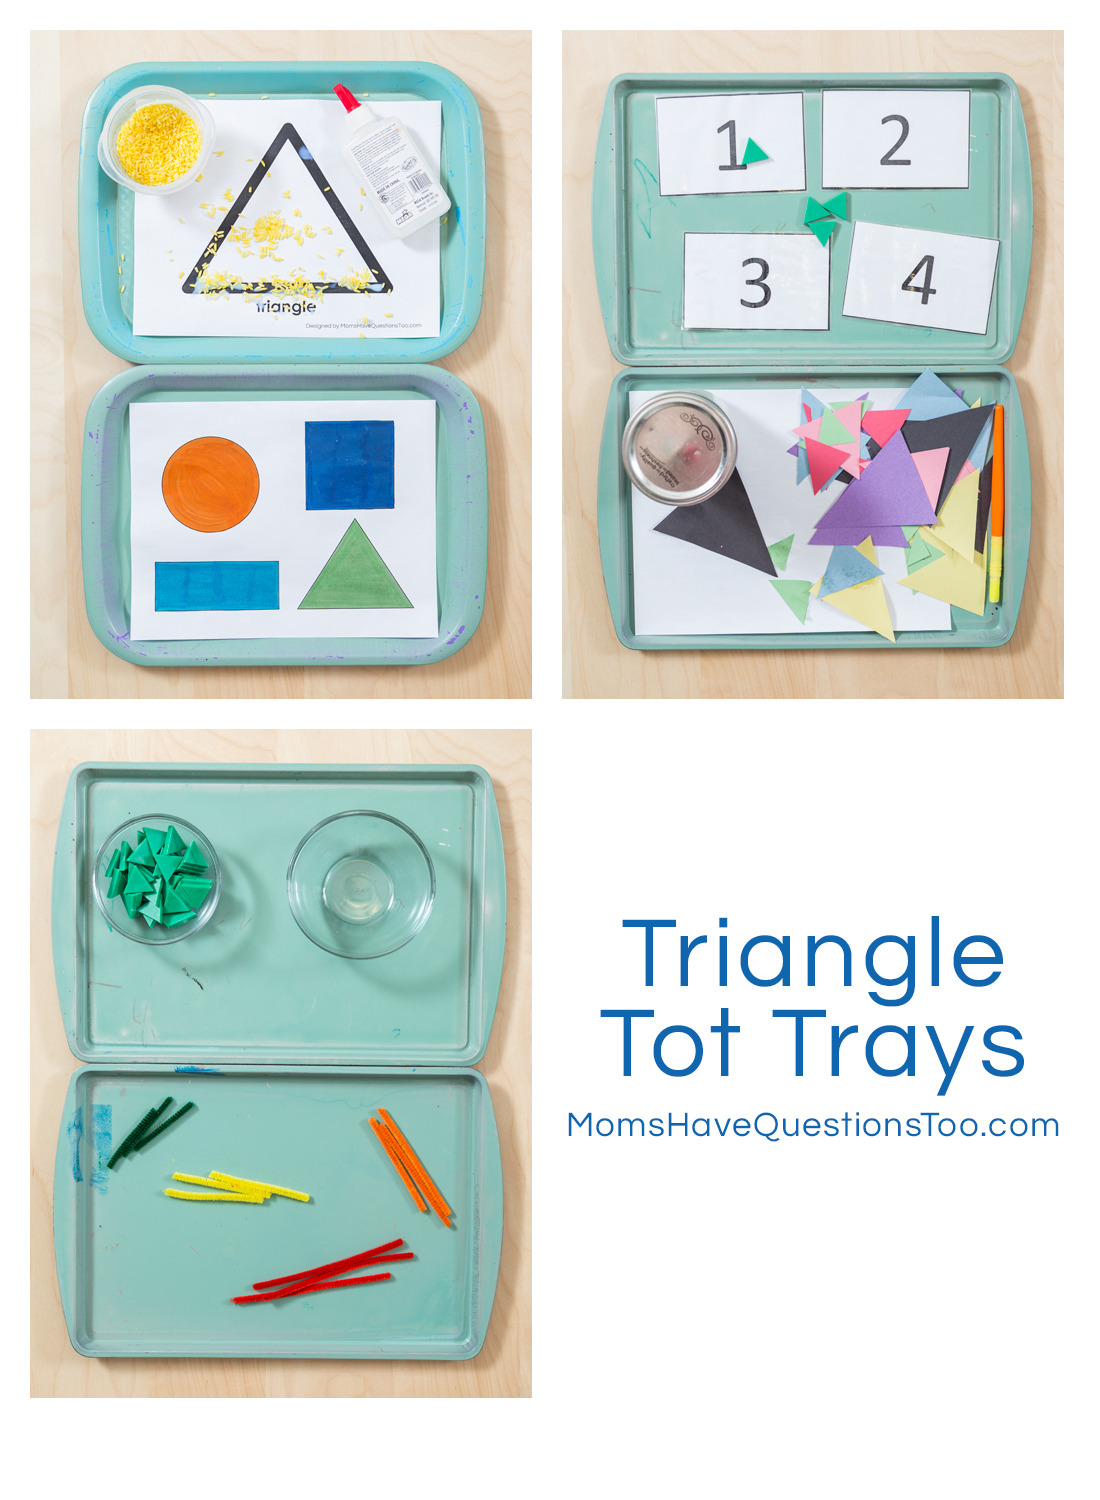 Triangle Tot Trays - Moms Have Questions Too